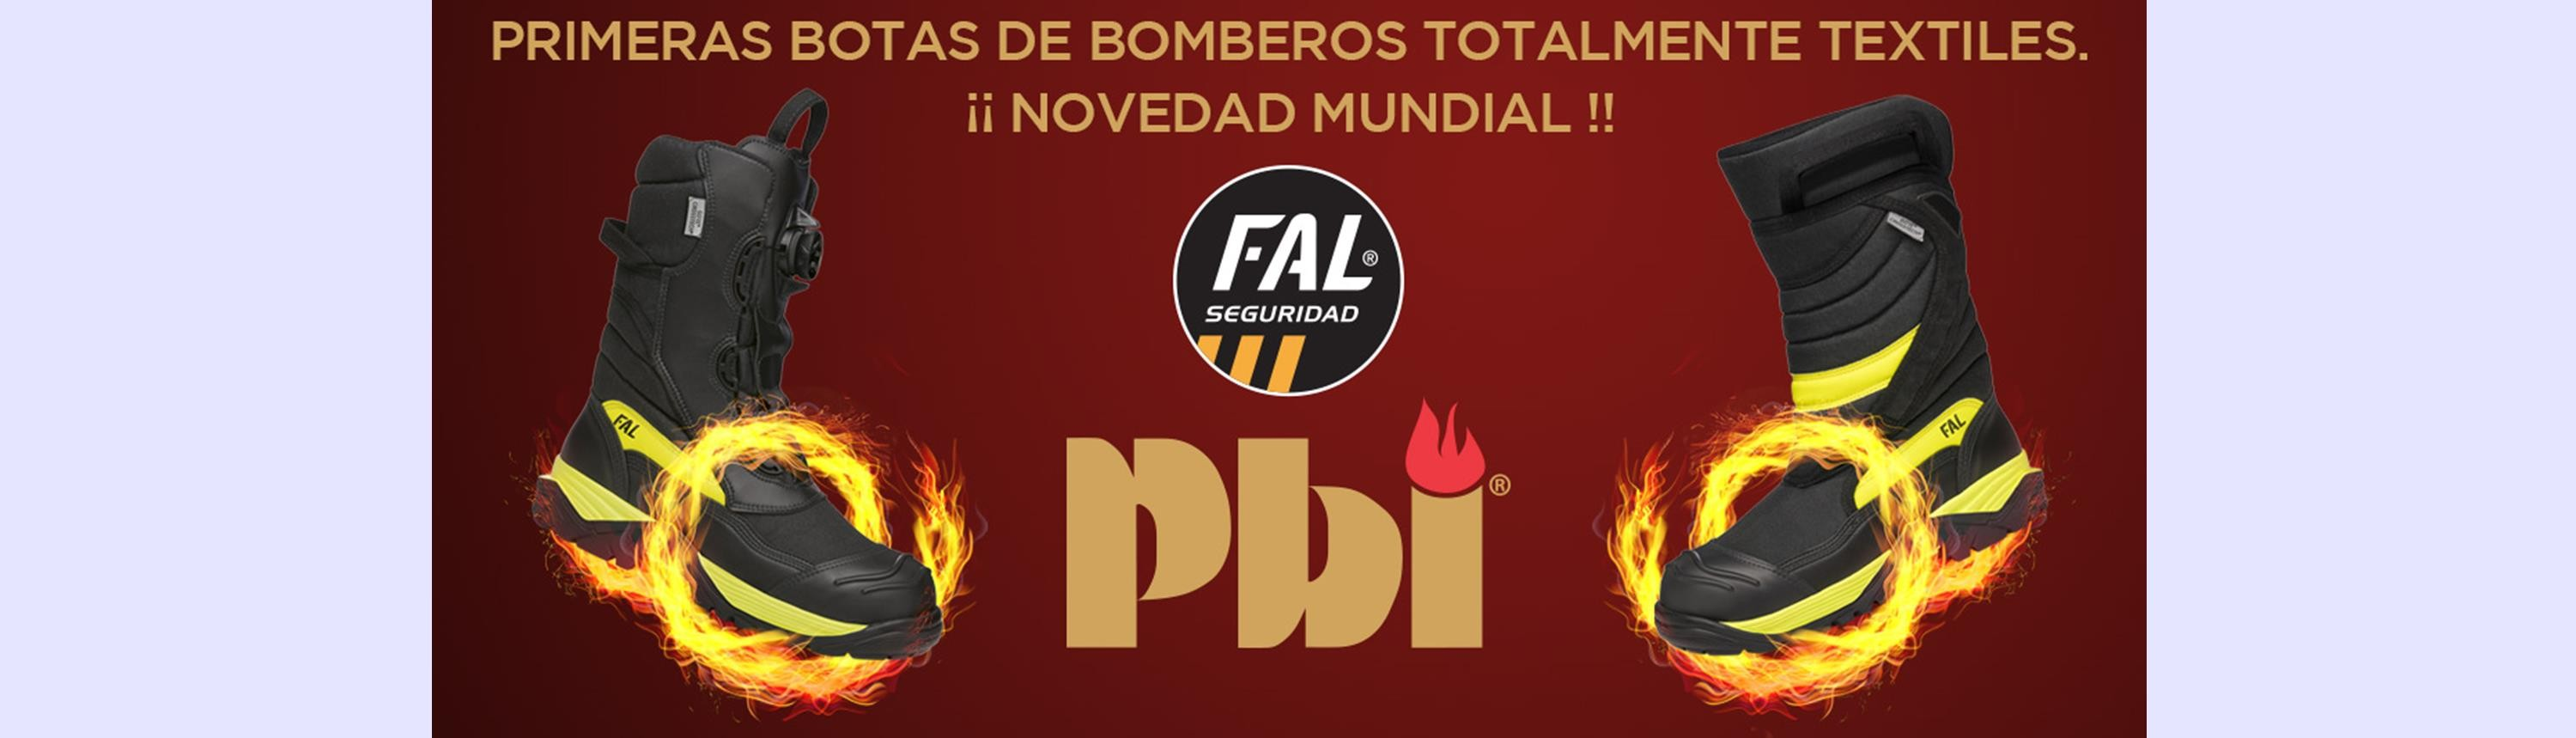 Fal Seguridad - PBI FireFighters Boots